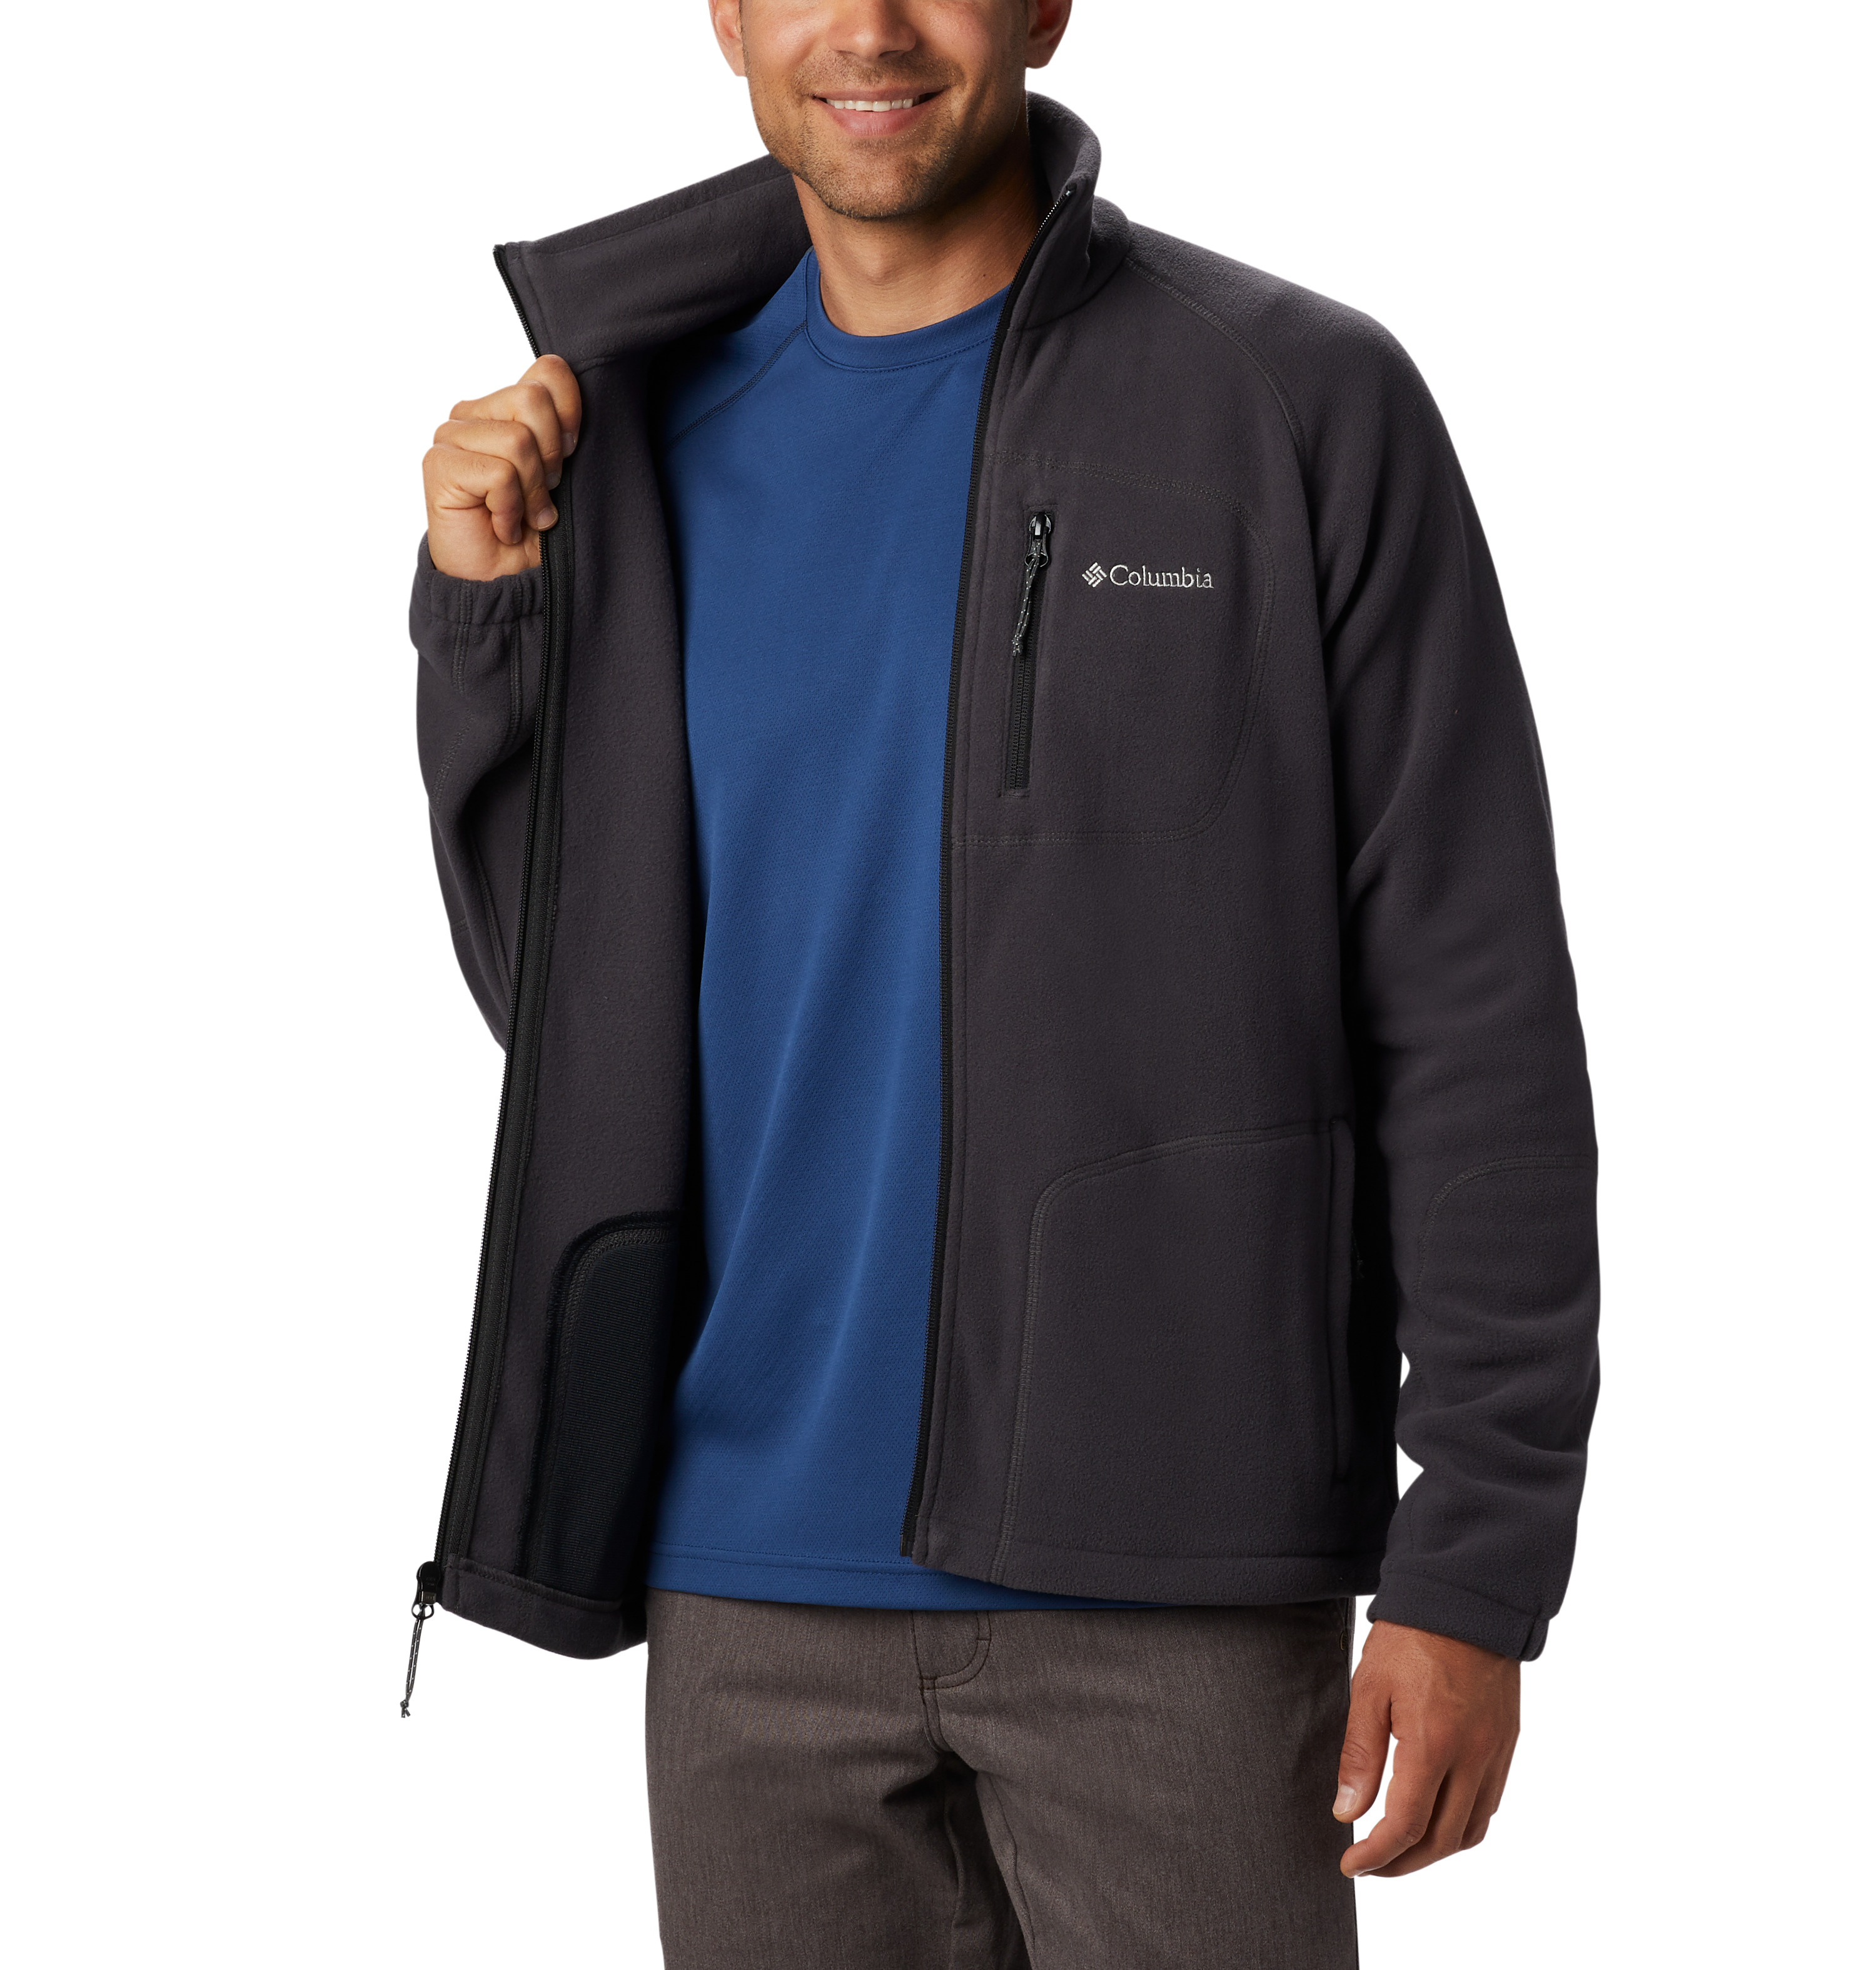 AM3039-013 COLUMBIA FAST TREK™ II FULL ZIP FLEECE